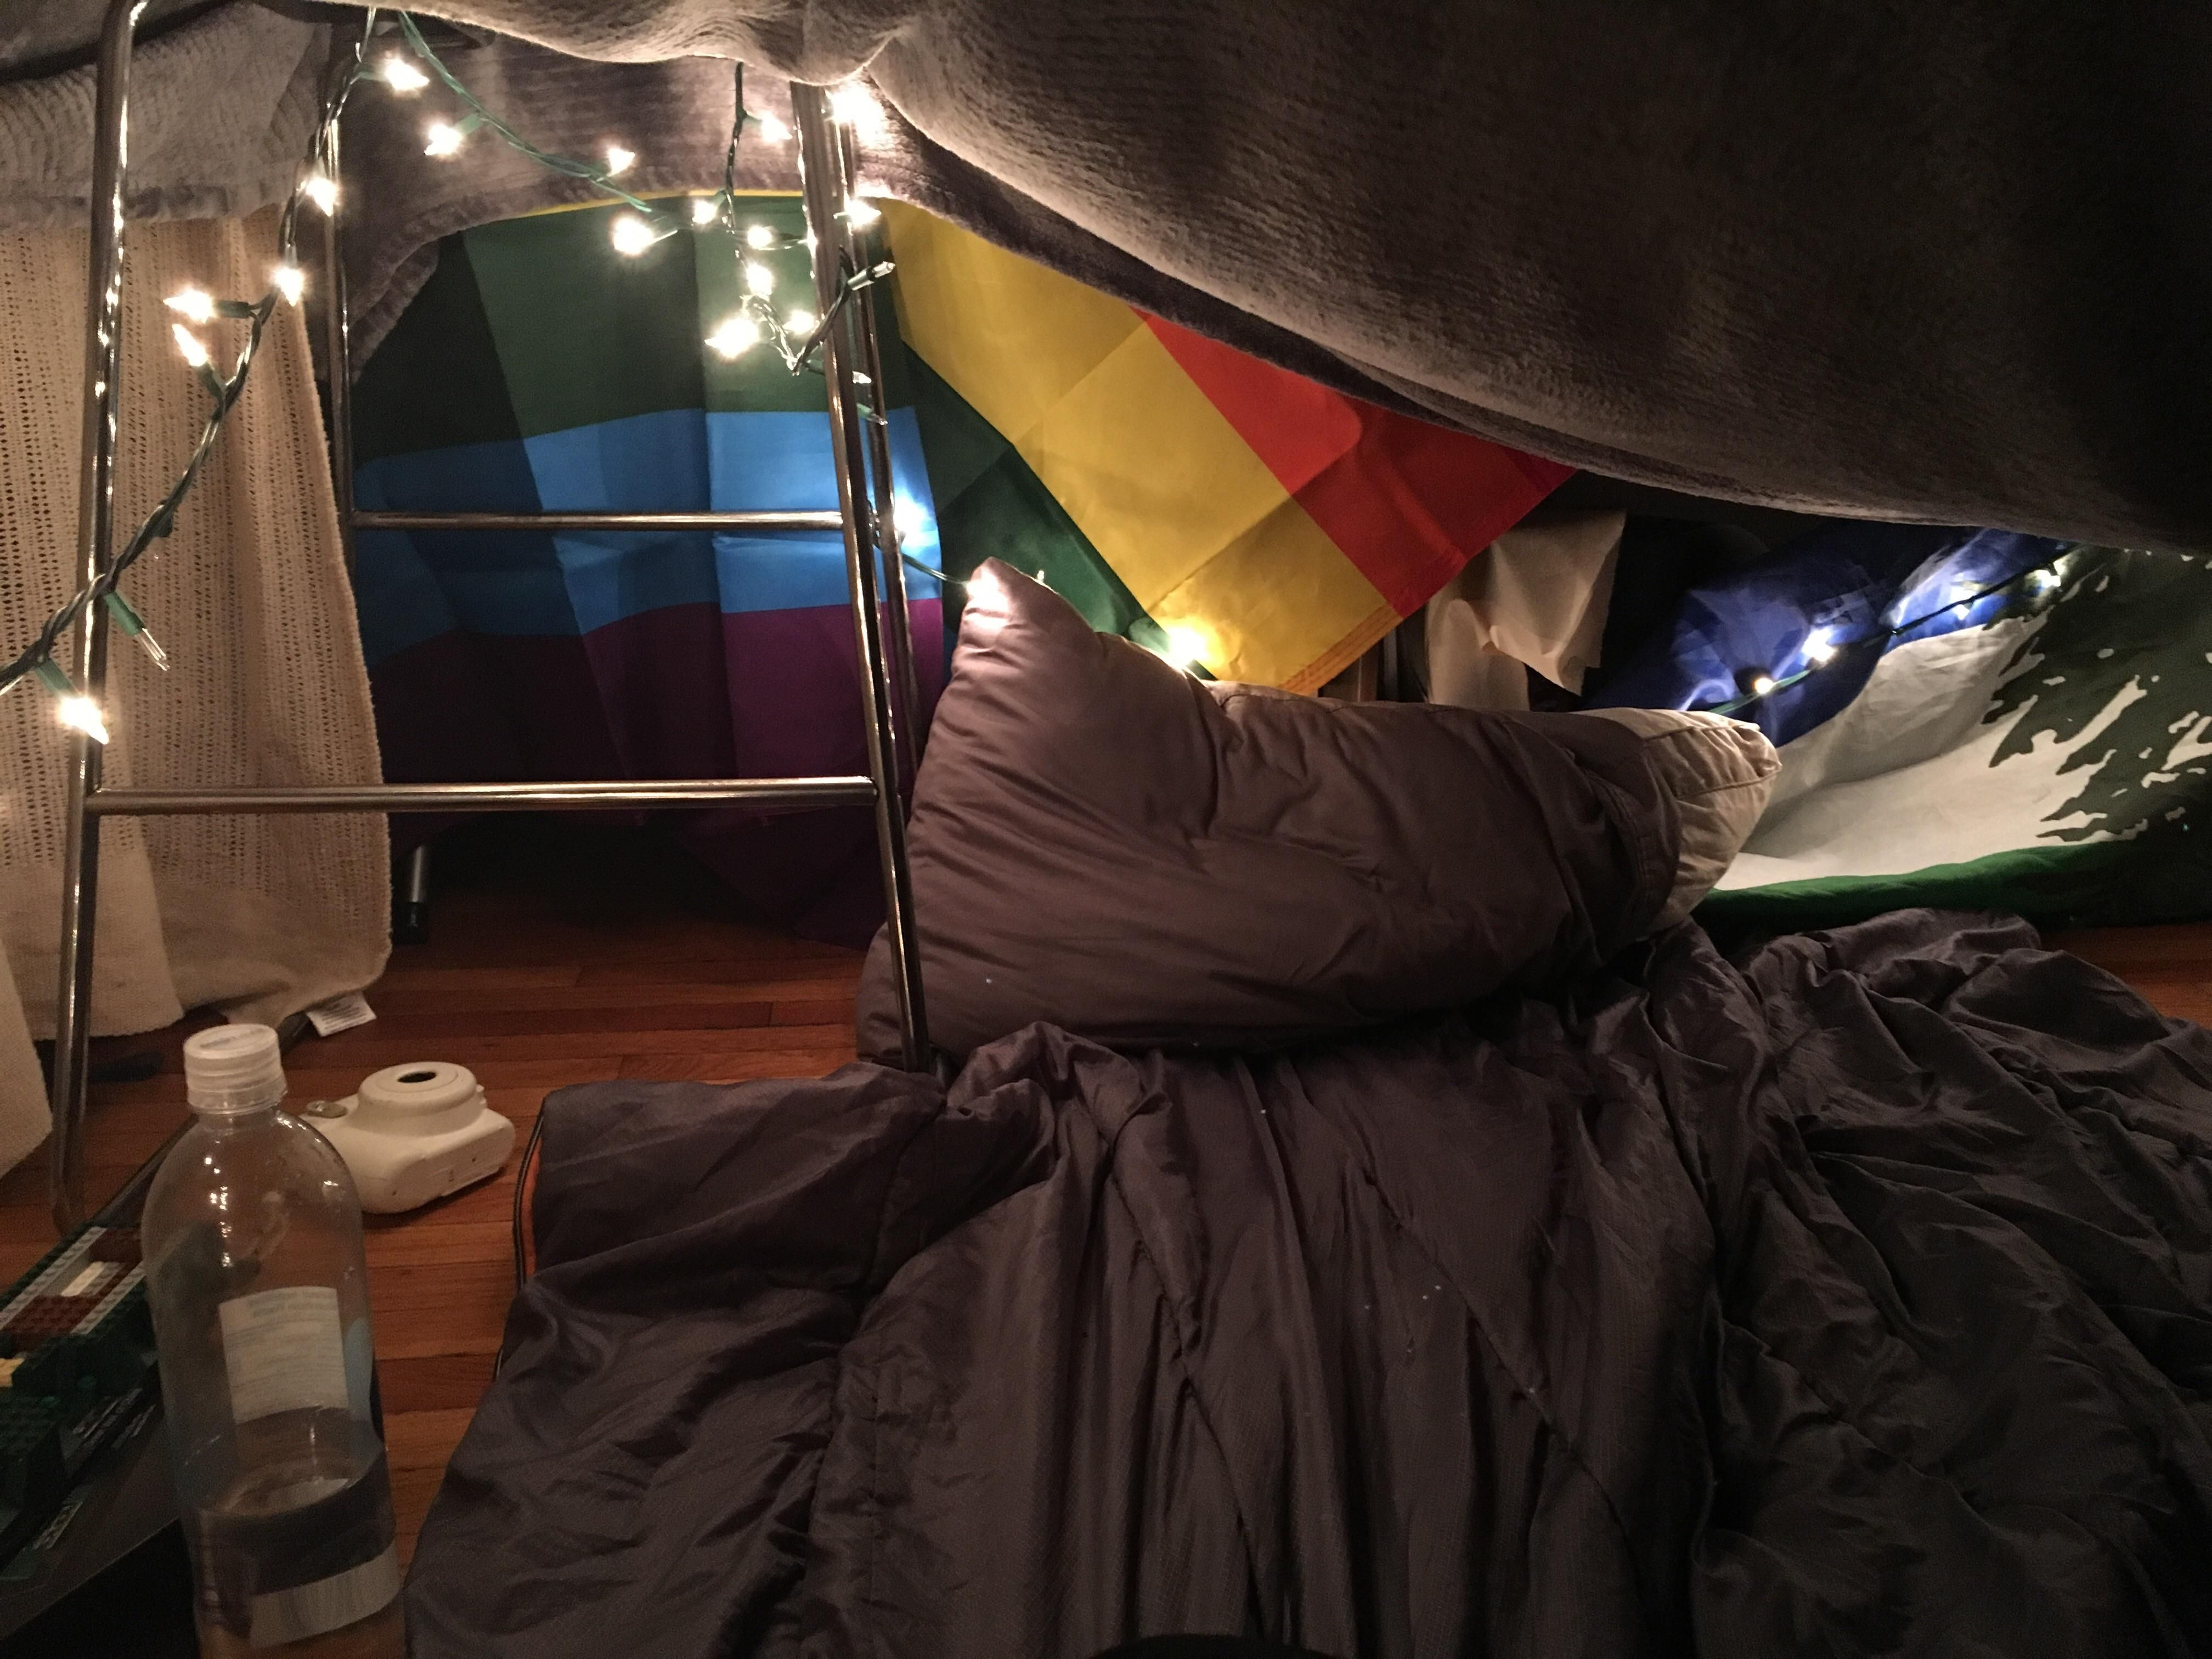 The blanket fort my boyfriend and I made